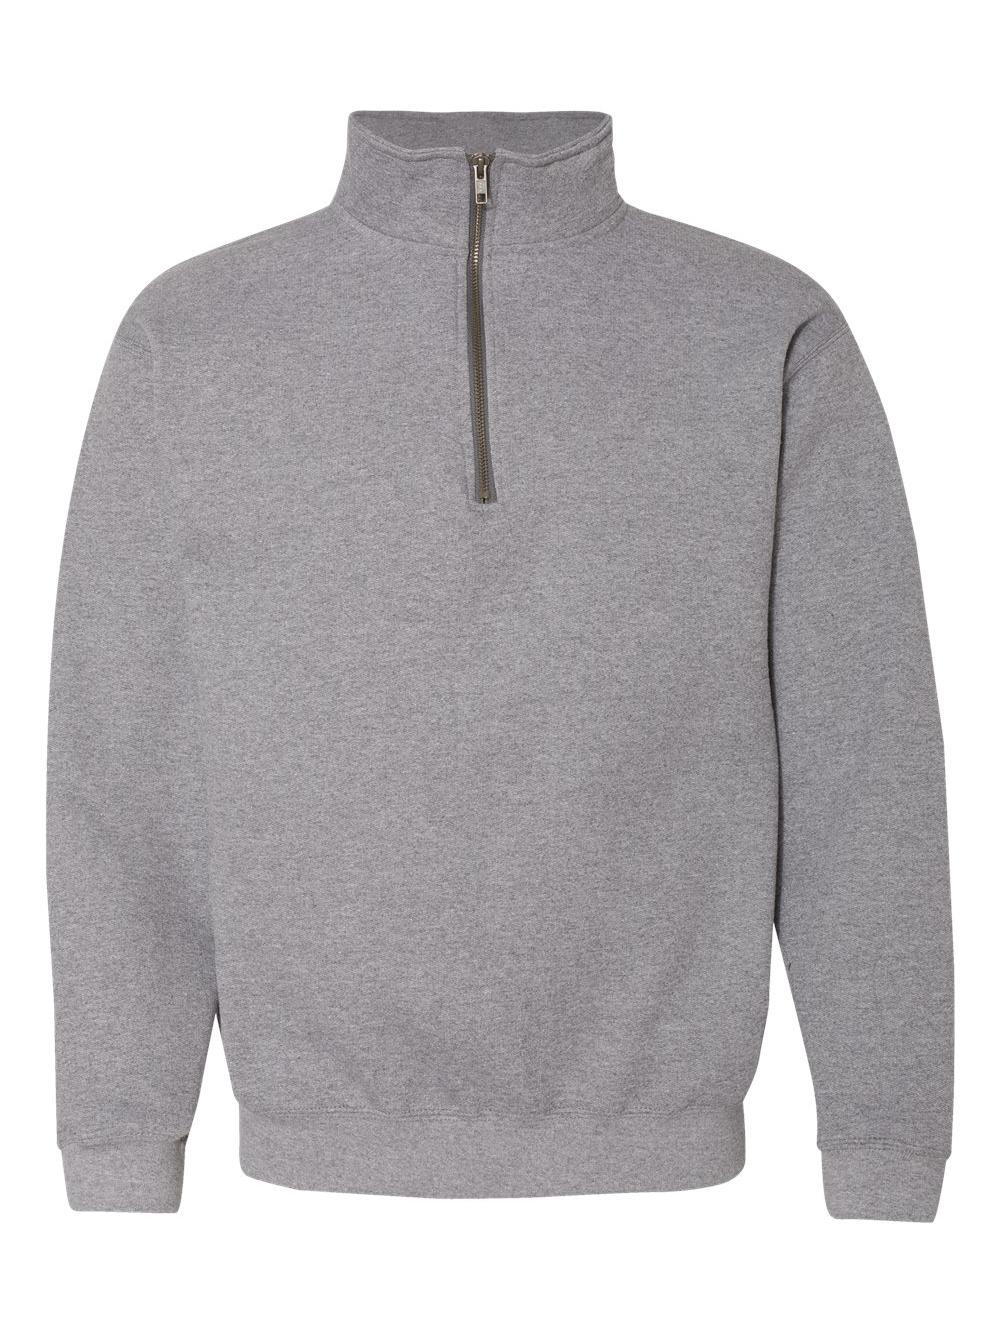 Gildan-Heavy-Blend-Quarter-Zip-Cadet-Collar-Sweatshirt-18800 thumbnail 9